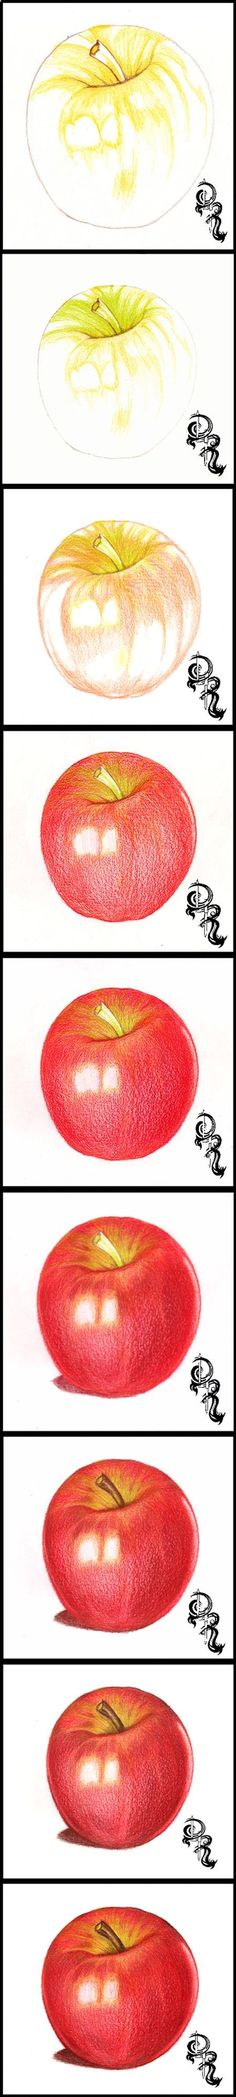 Pencil Portrait Mastery - How to Draw an Apple with Colored Pencils. A step-by-step image of a colored pencil #artlesson by Derrick Rathgeber. Click the image for full details instructions on my blog page. derricktheartist....: - Discover The Secrets Of Drawing Realistic Pencil Portraits